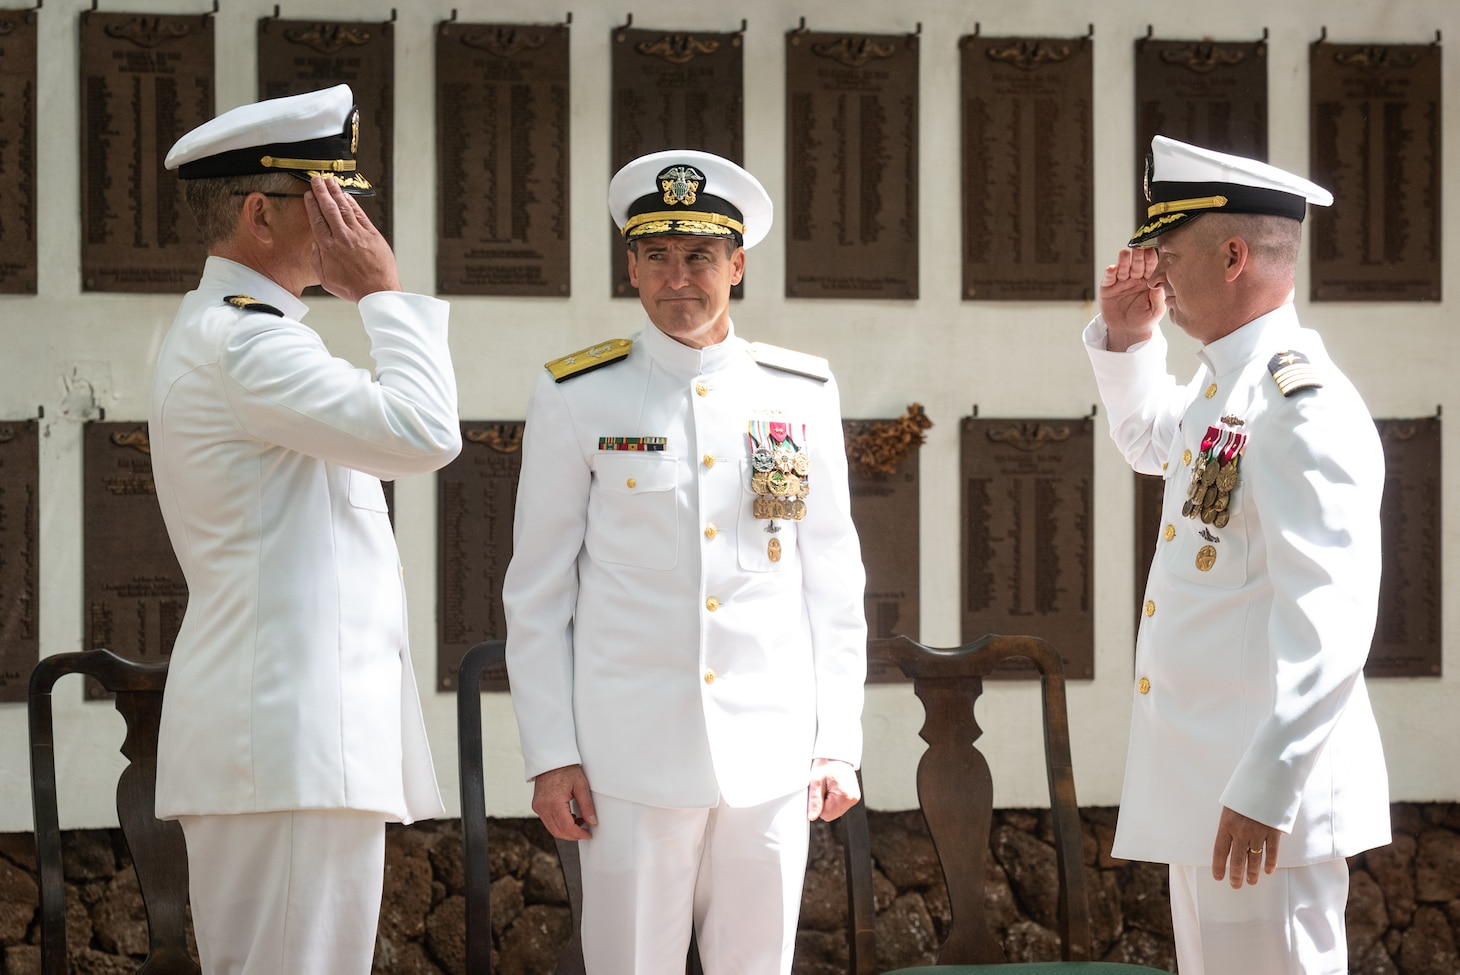 190604-N-KC128-0212 JOINT BASE PEARL HARBOR-HICKAM, Hawaii (June 4, 2019) Capt. Andrew Hertel, left, is relieved by Capt. Lance Thompson, right, during the change of command ceremony of Naval Submarine Training Center Pacific (NSTCP) at Parche Memorial on Joint Base Pearl Harbor-Hickam, Hawaii, June 4, 2019.(U.S. Navy Photo by Mass Communication Specialist 1st Class Daniel Hinton)